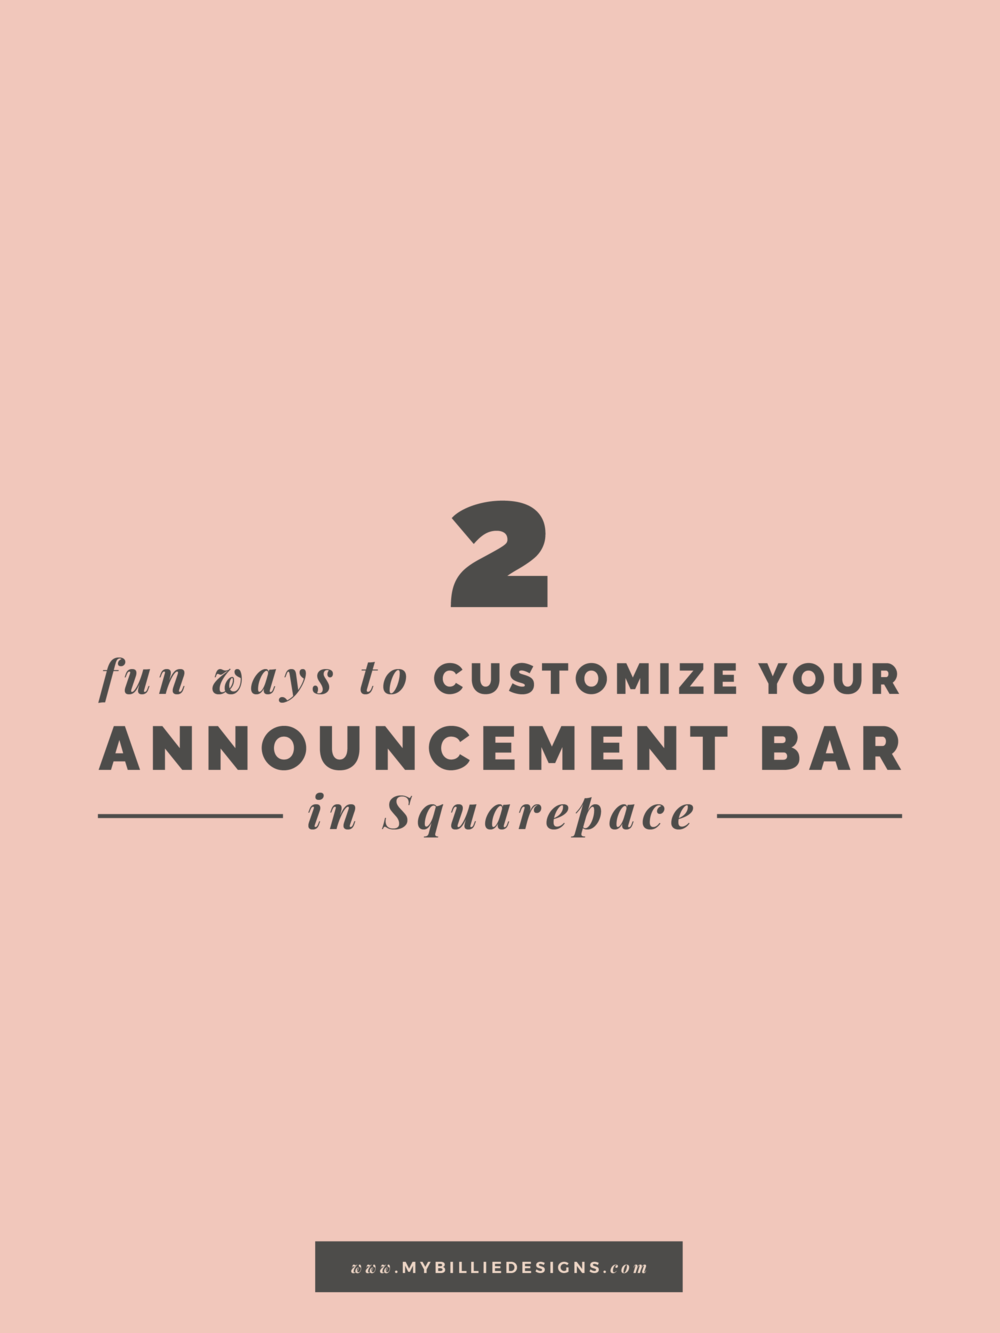 2 Fun Ways To Customize Your Announcement Bar In Squarespace